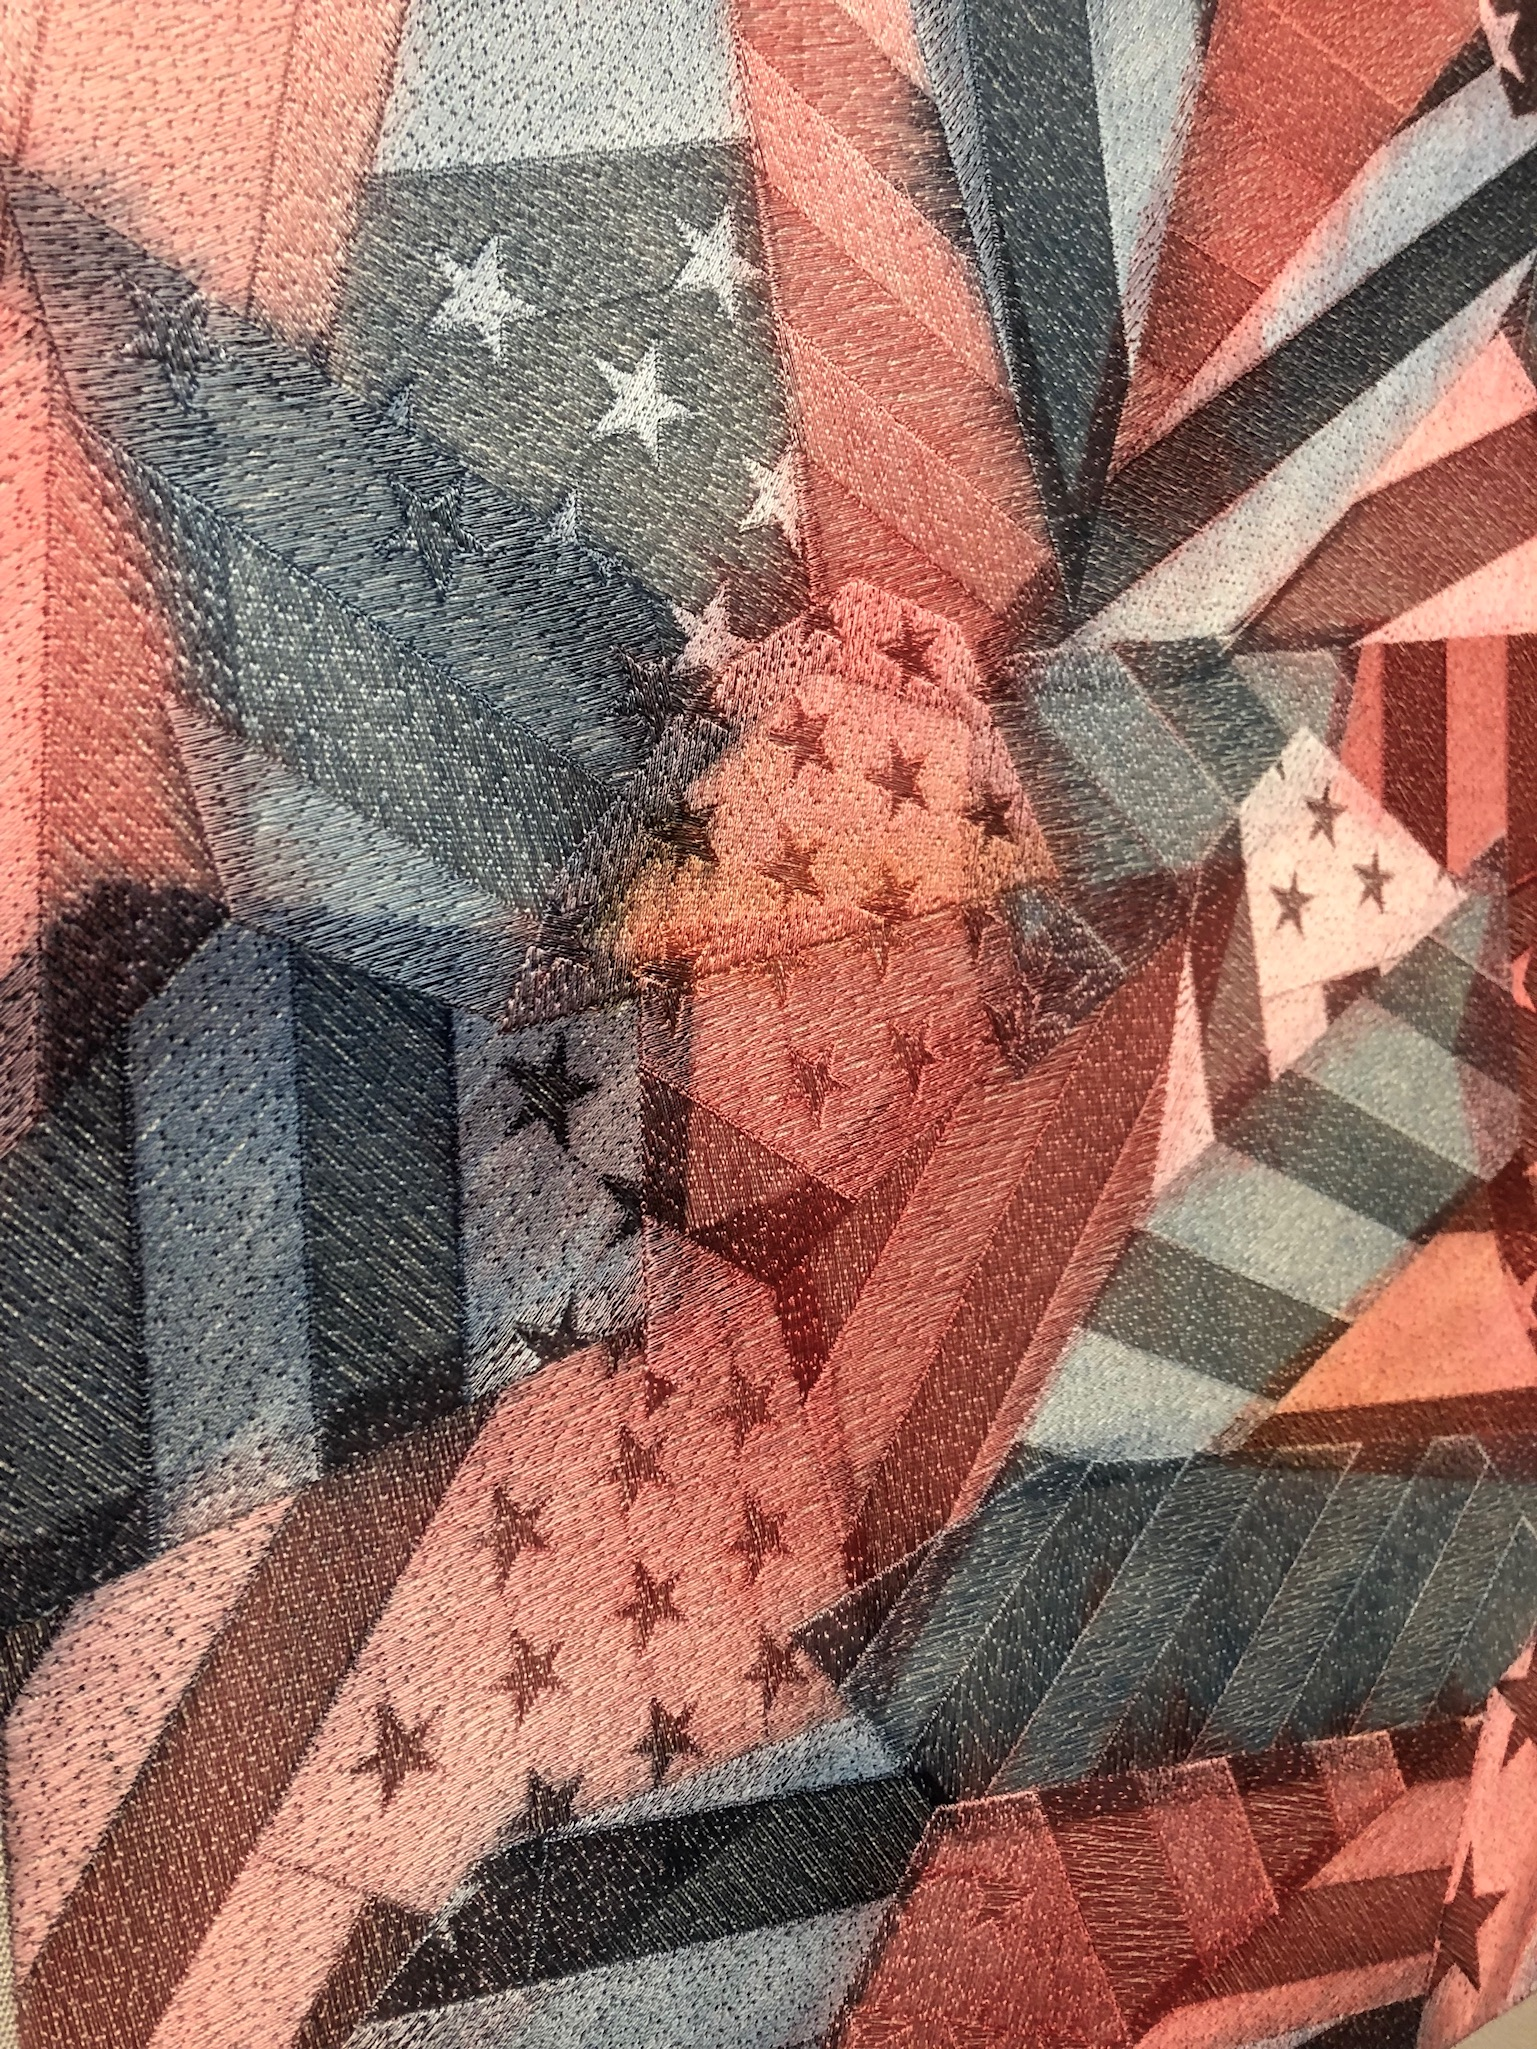 SHATTERED FLAGS